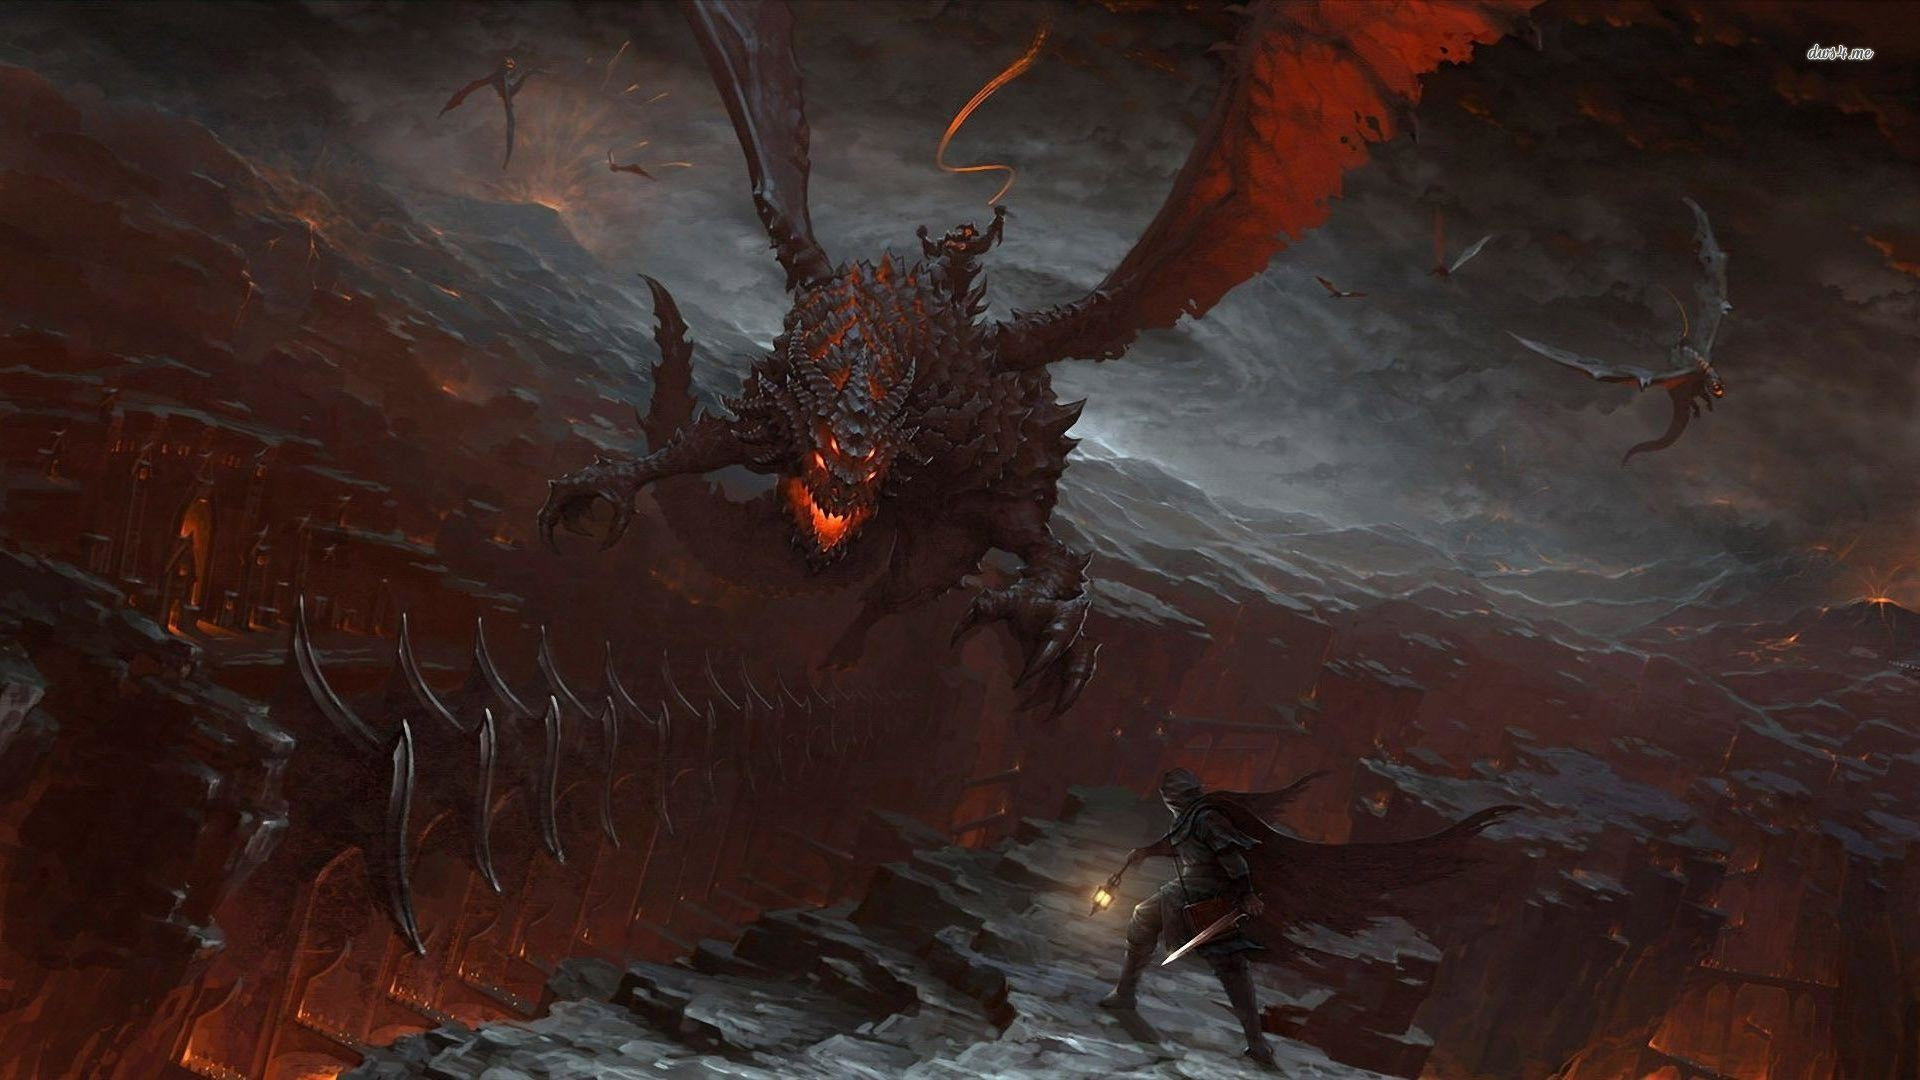 Deathwing – World of Warcraft wallpaper – Game wallpapers – #